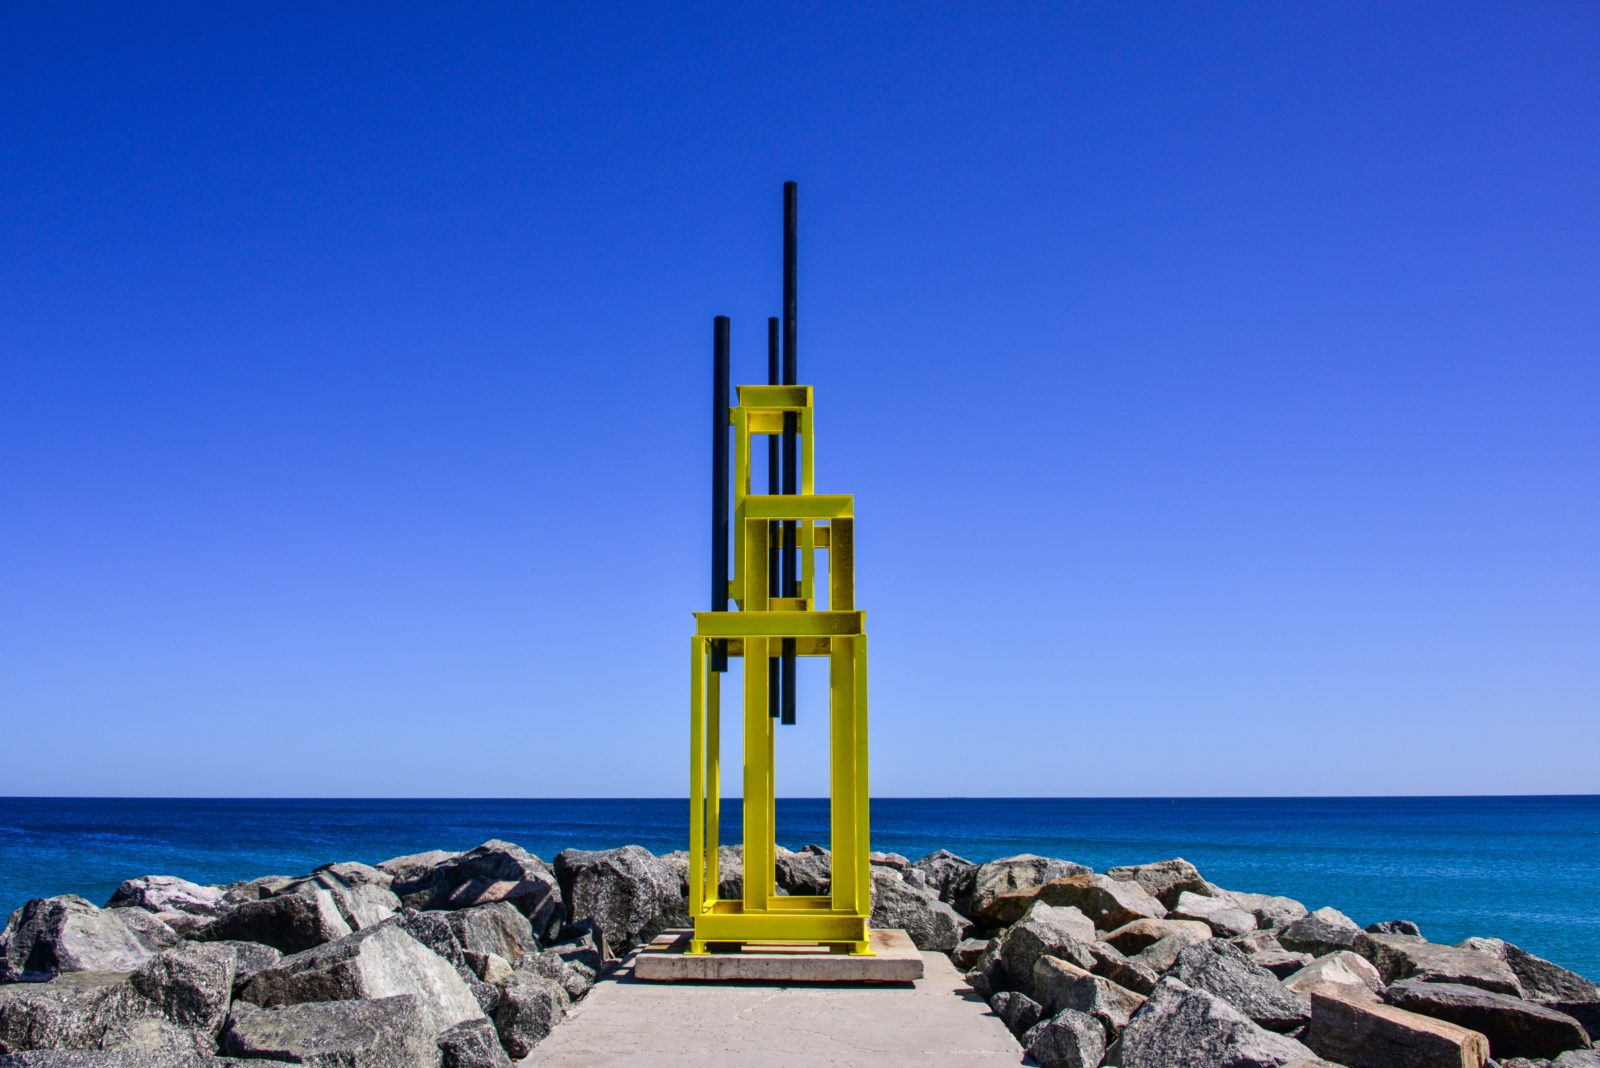 Sculpture by the Sea, Cottesloe